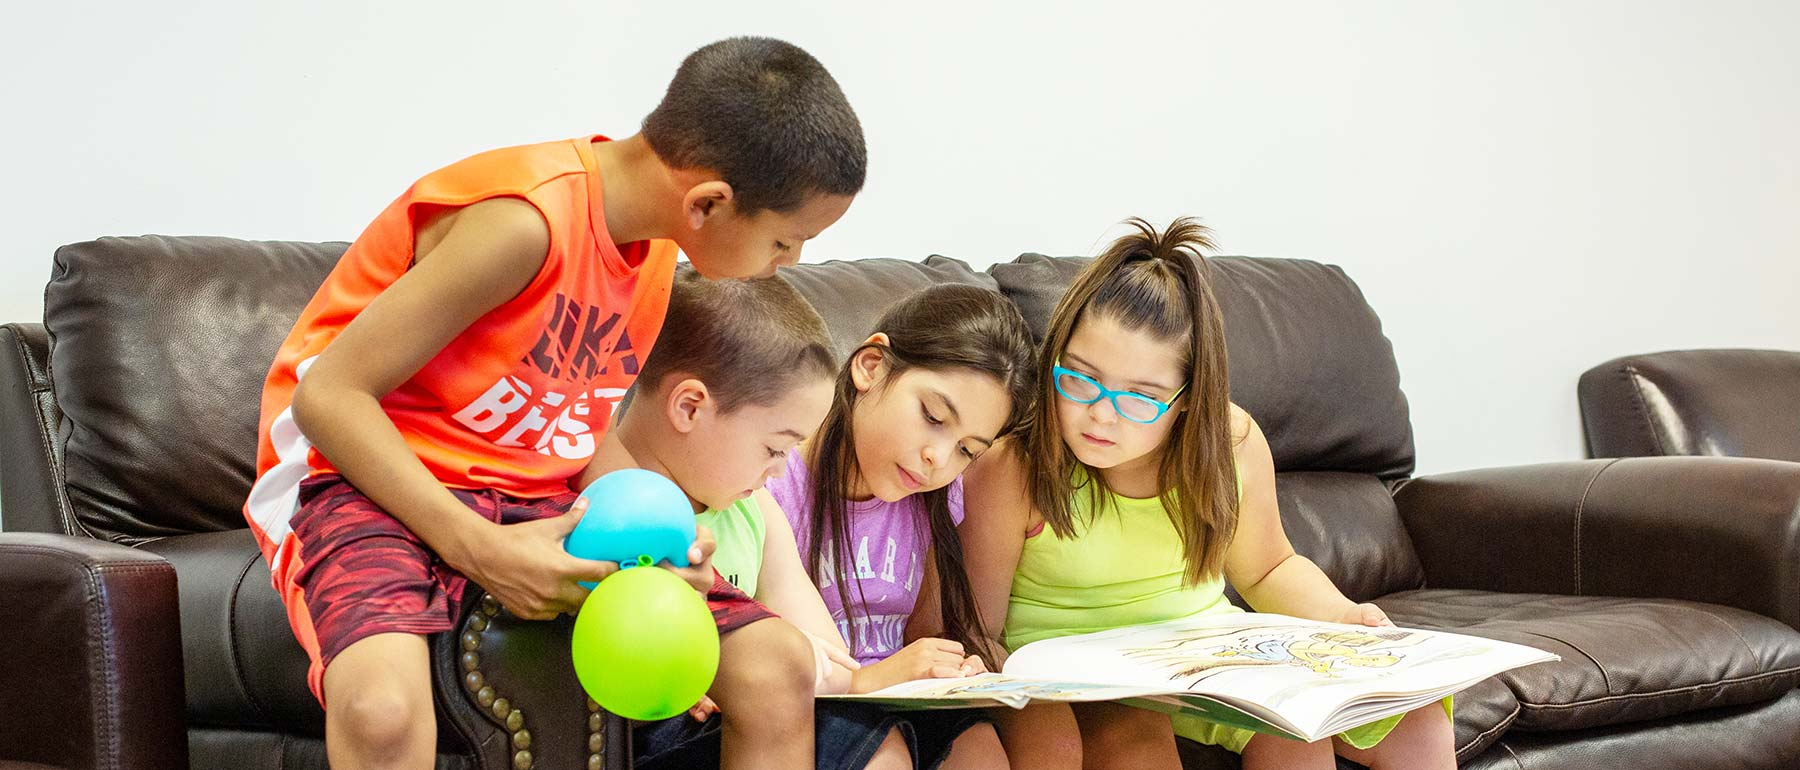 Assessment of verbal behavior, social skills, adaptive skills and barriers to learning.